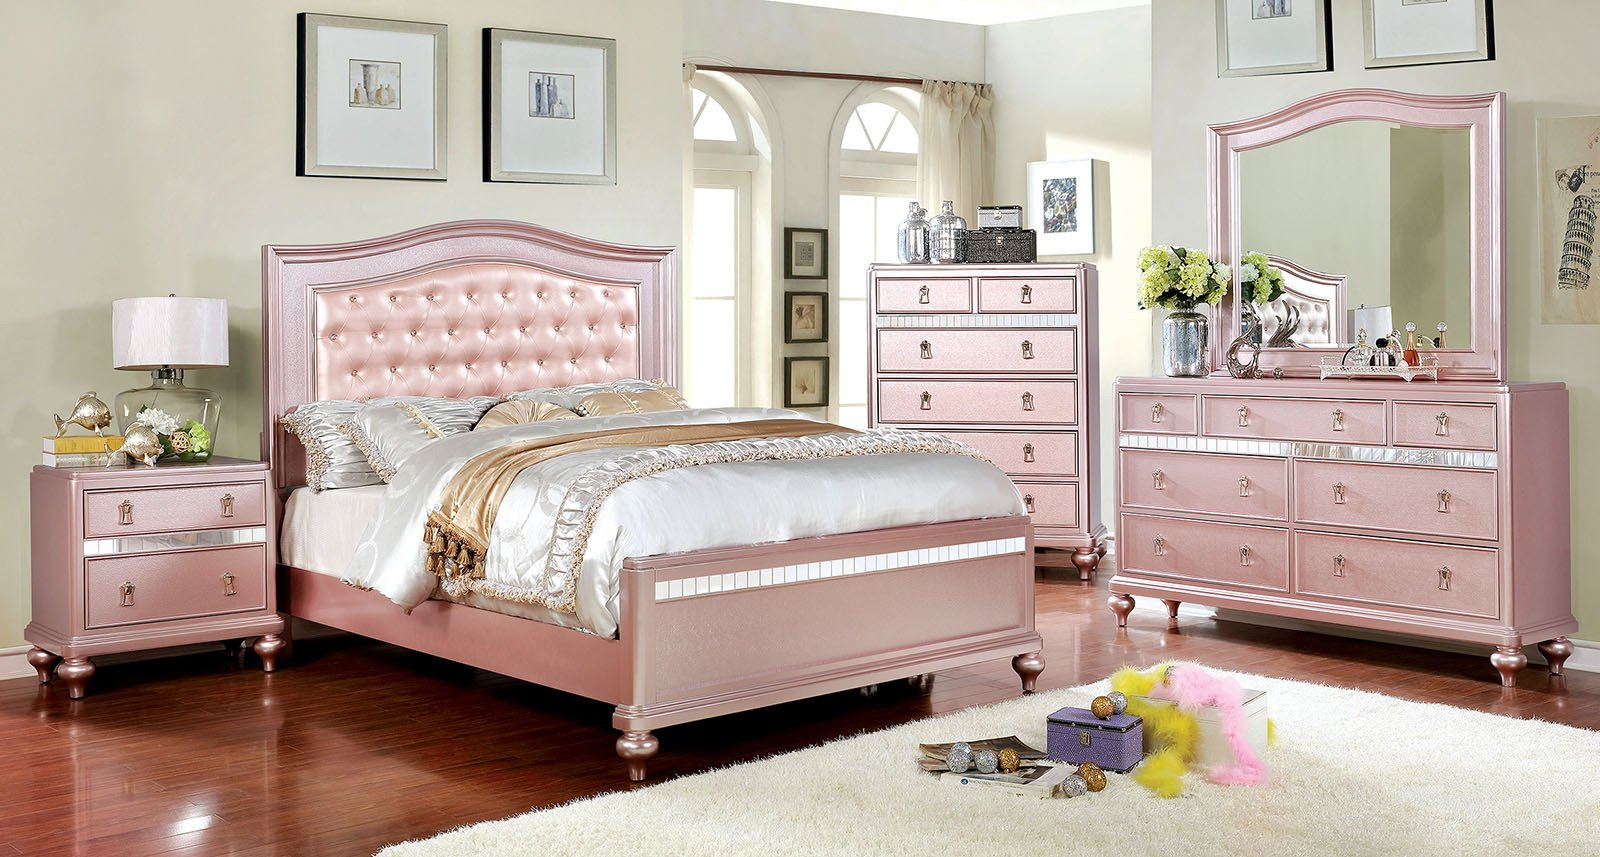 Mirrored Bedroom Furniture Set Fresh Ariston Rose Gold Finish Queen Size Bed with Mirrored Trim Jeweled button Tufted Padded Leather Headboard